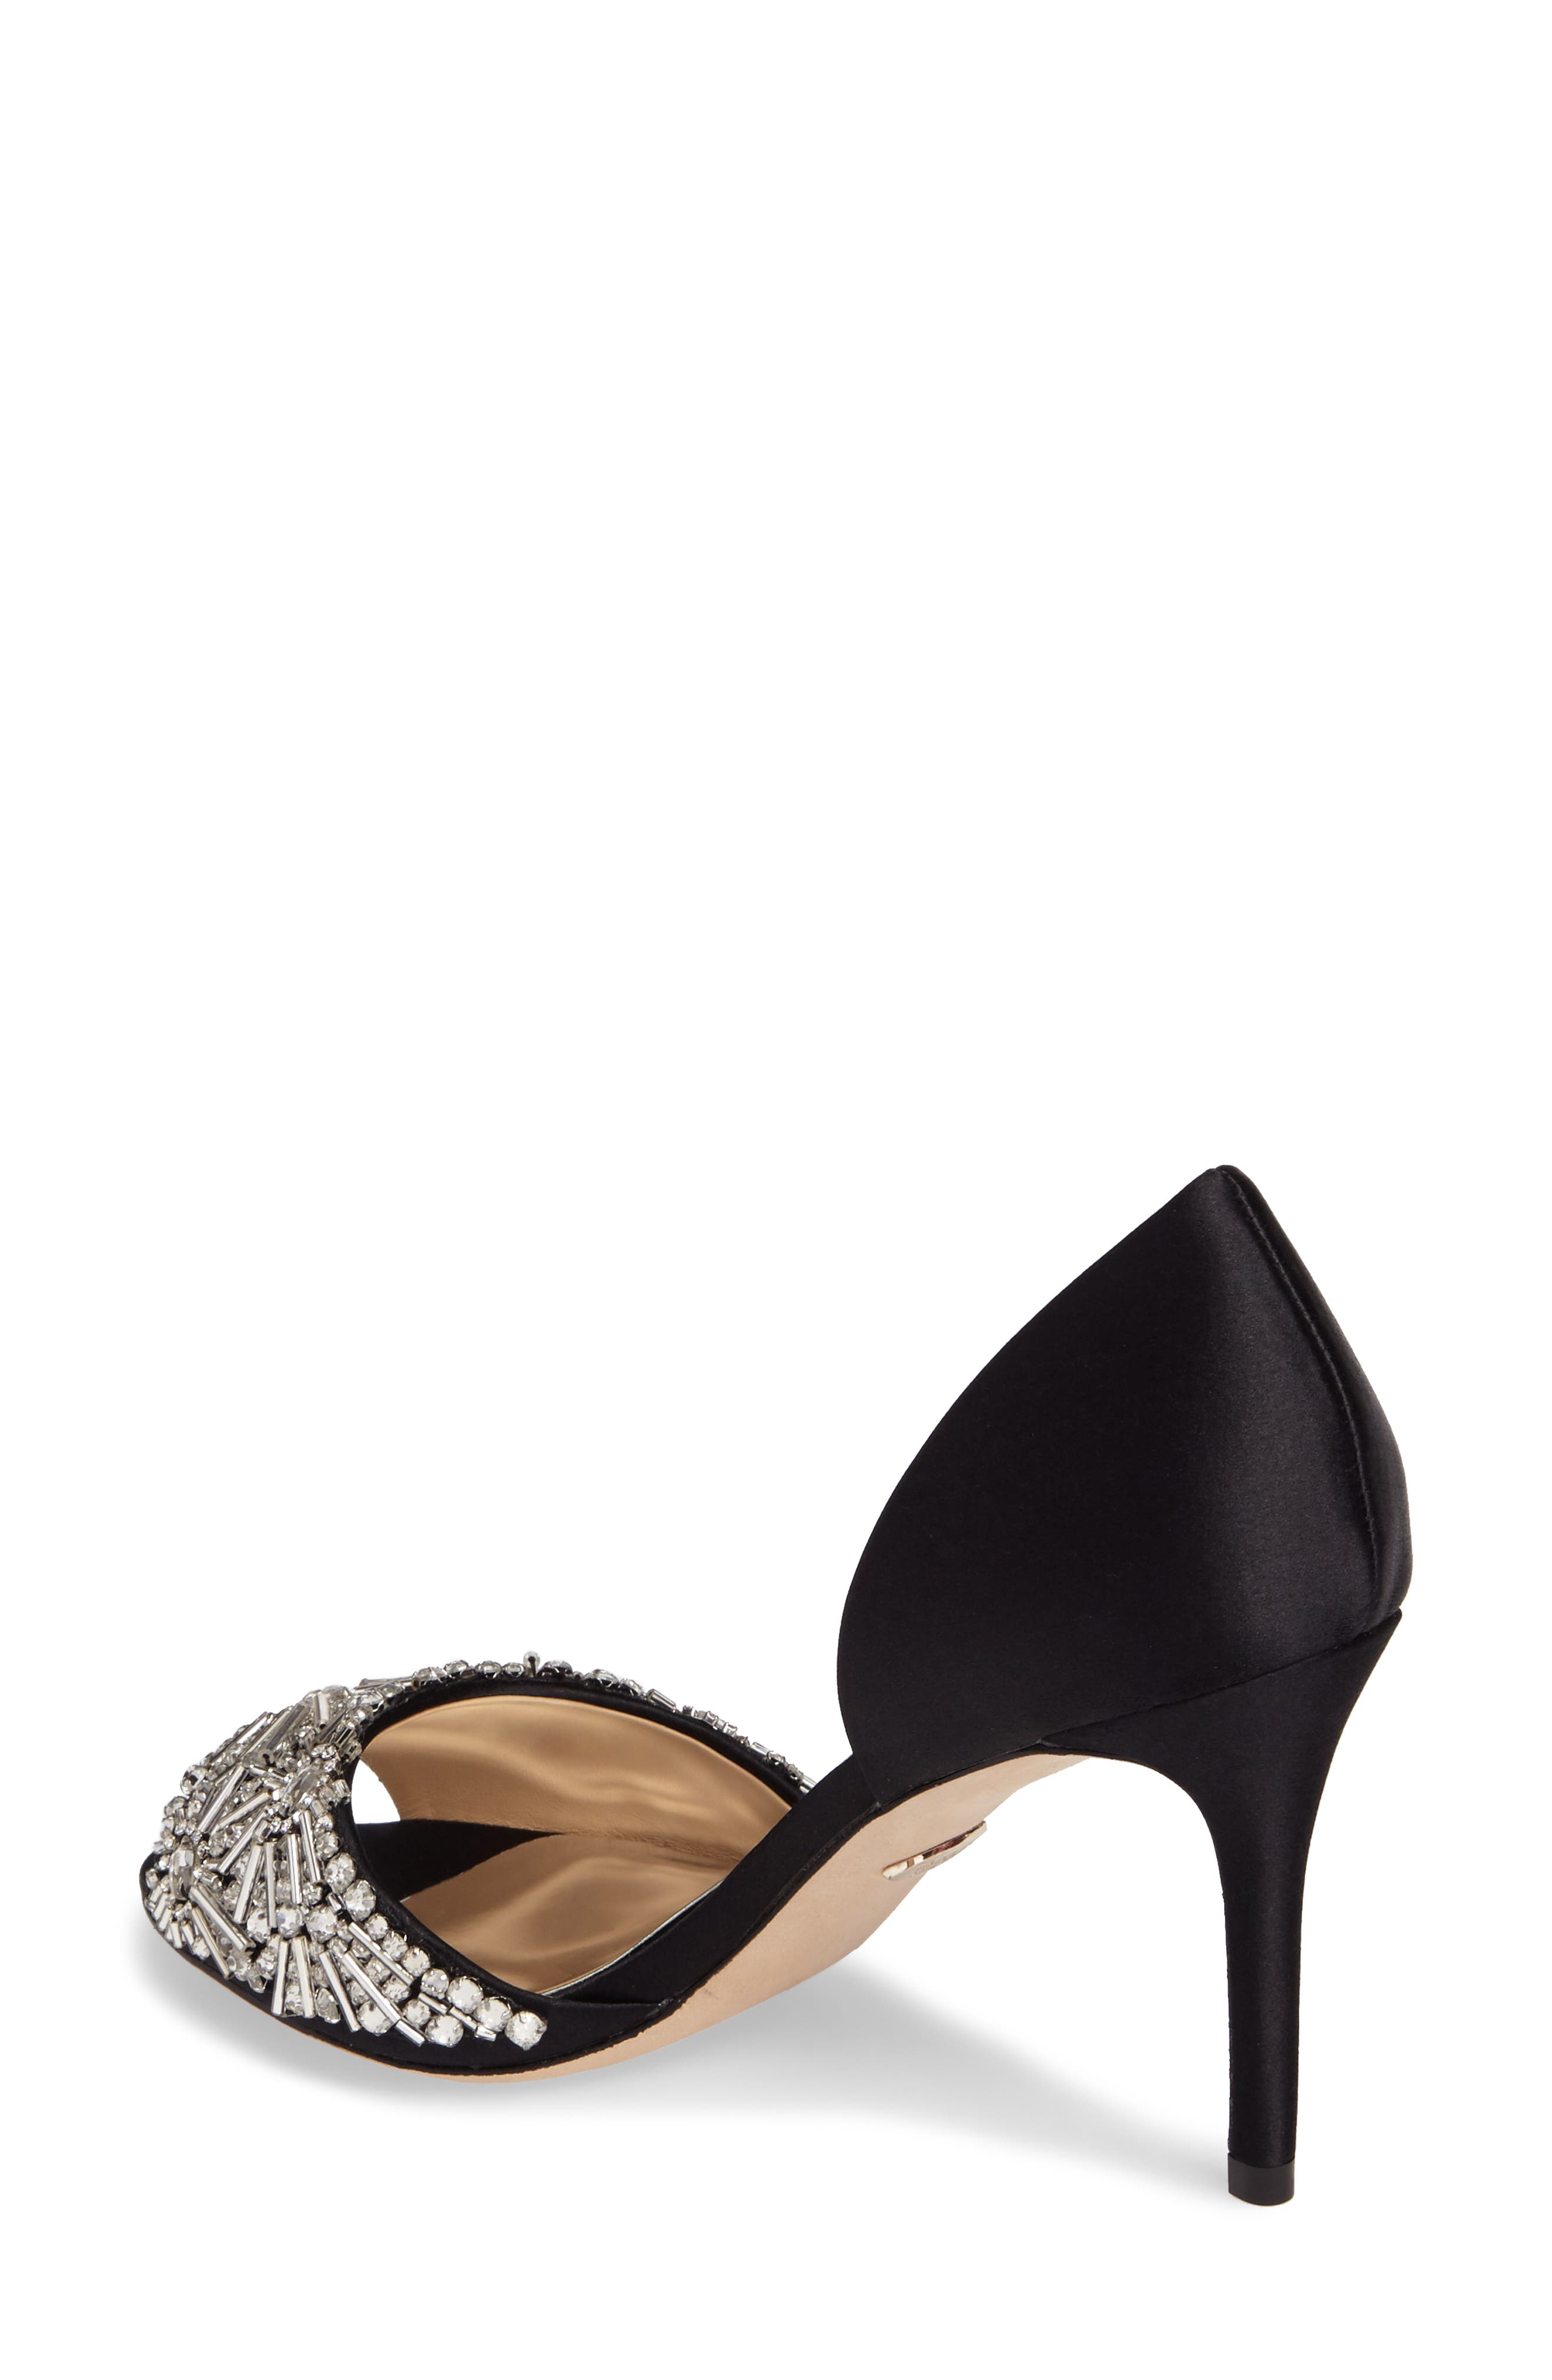 Maria Embellished d'Orsay Pump,                             Alternate thumbnail 7, color,